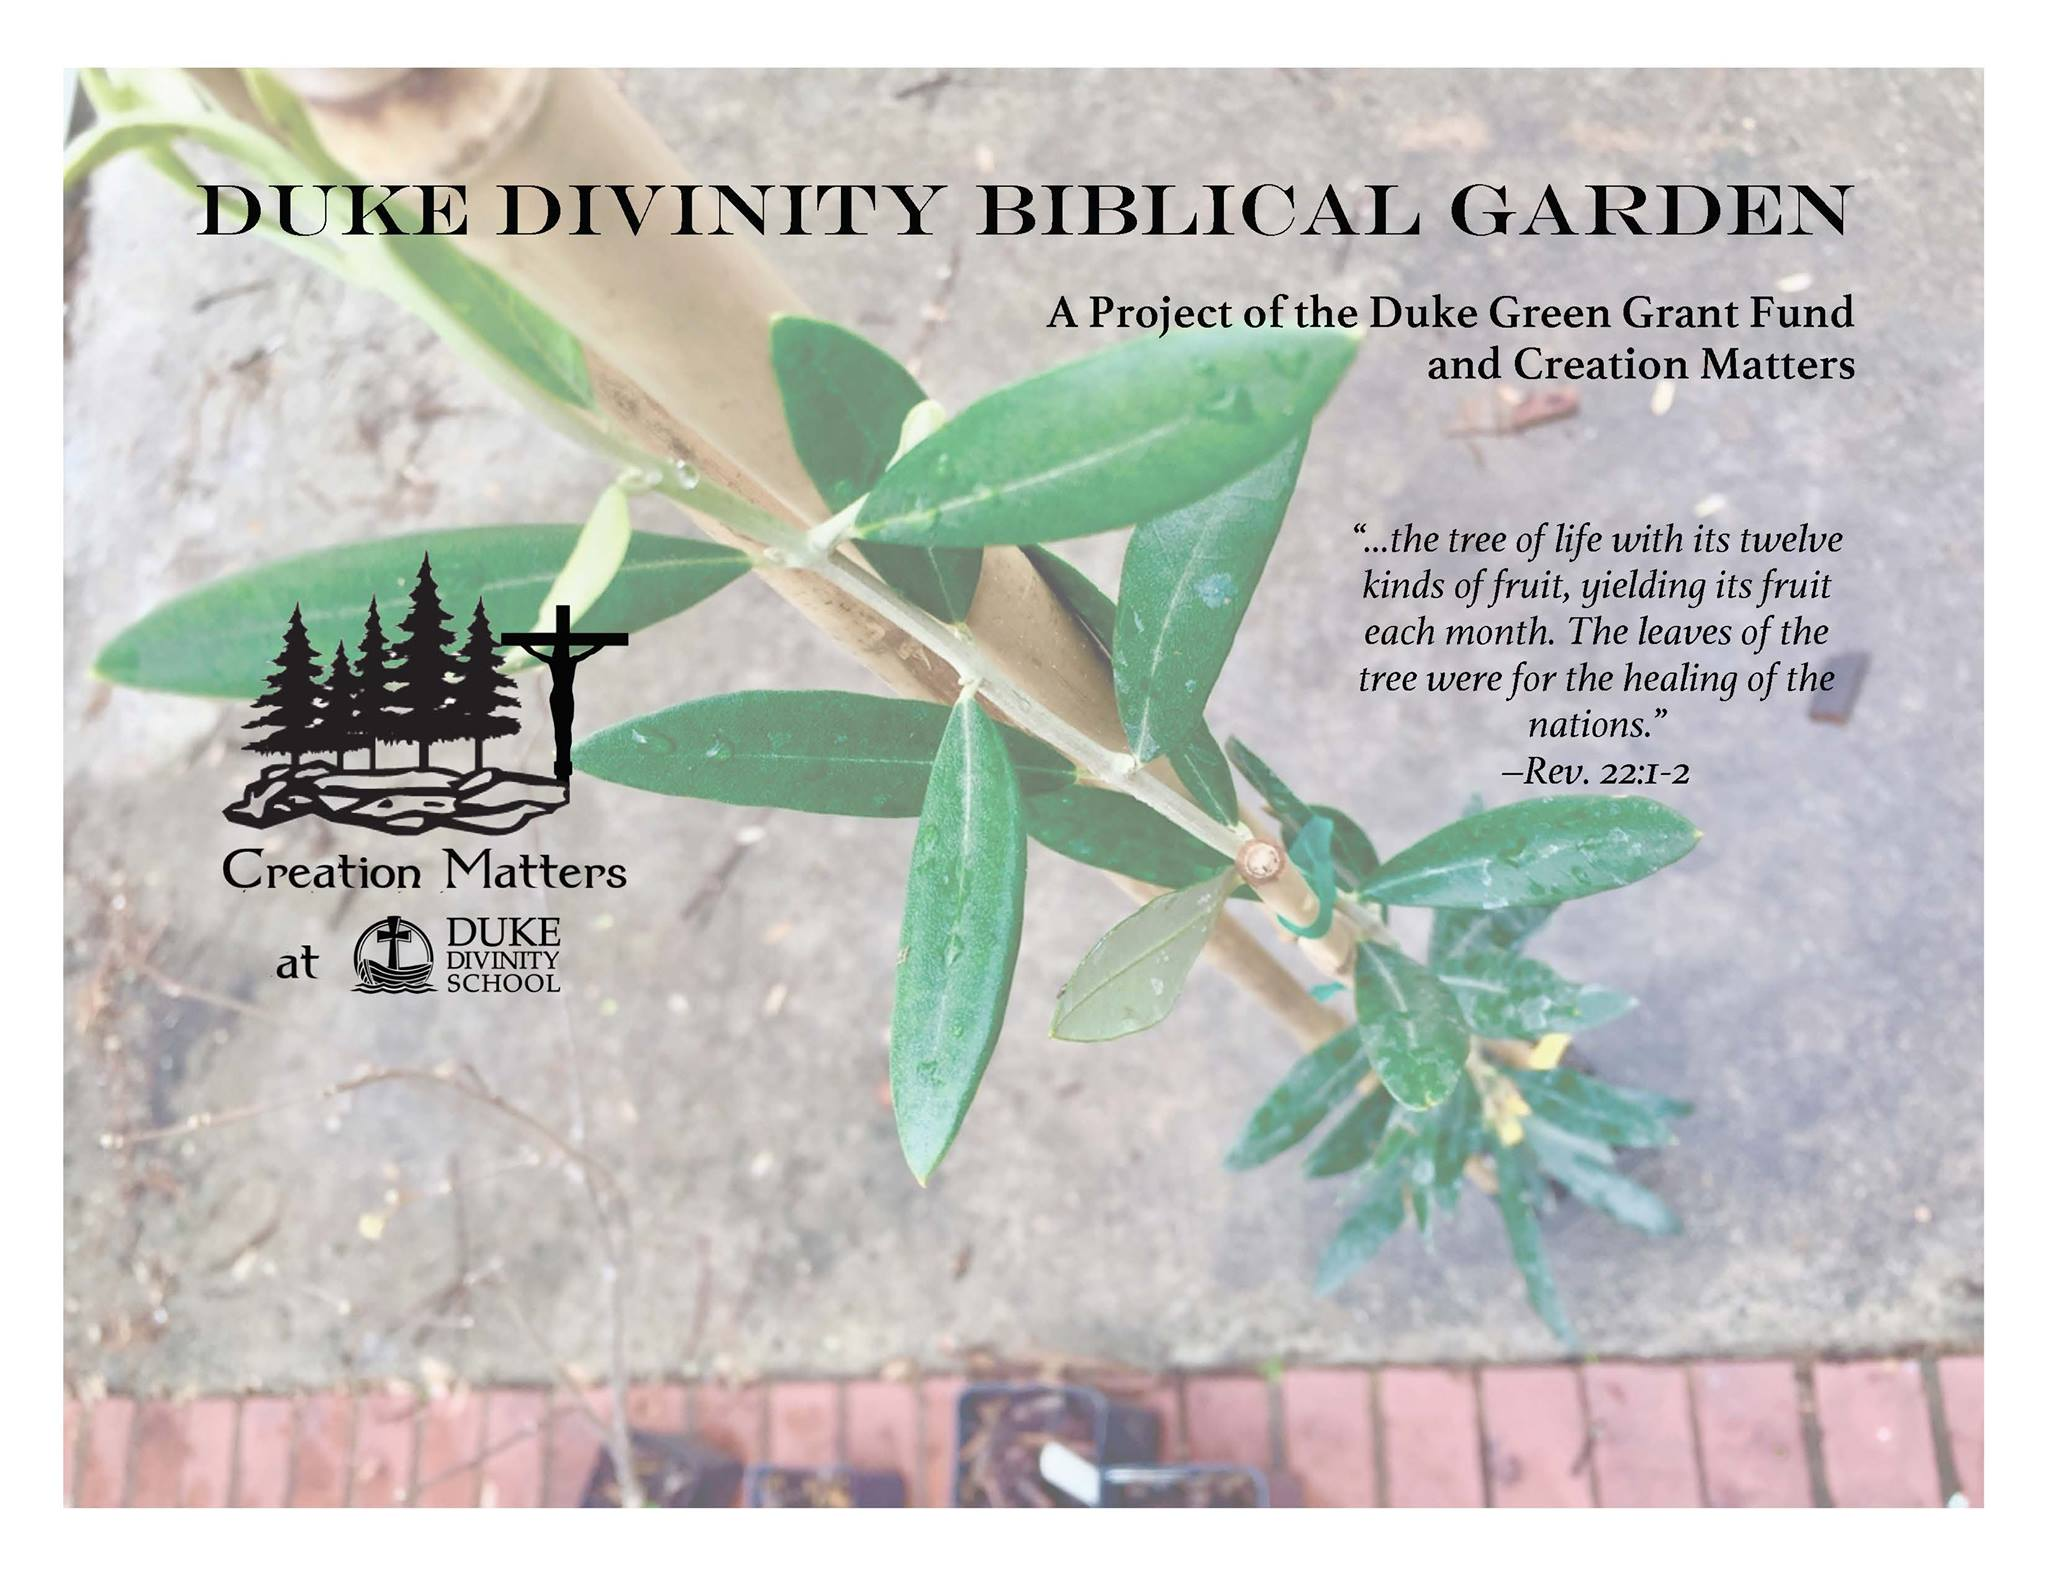 sign for Bibilcal Garden at Duke Divinity School